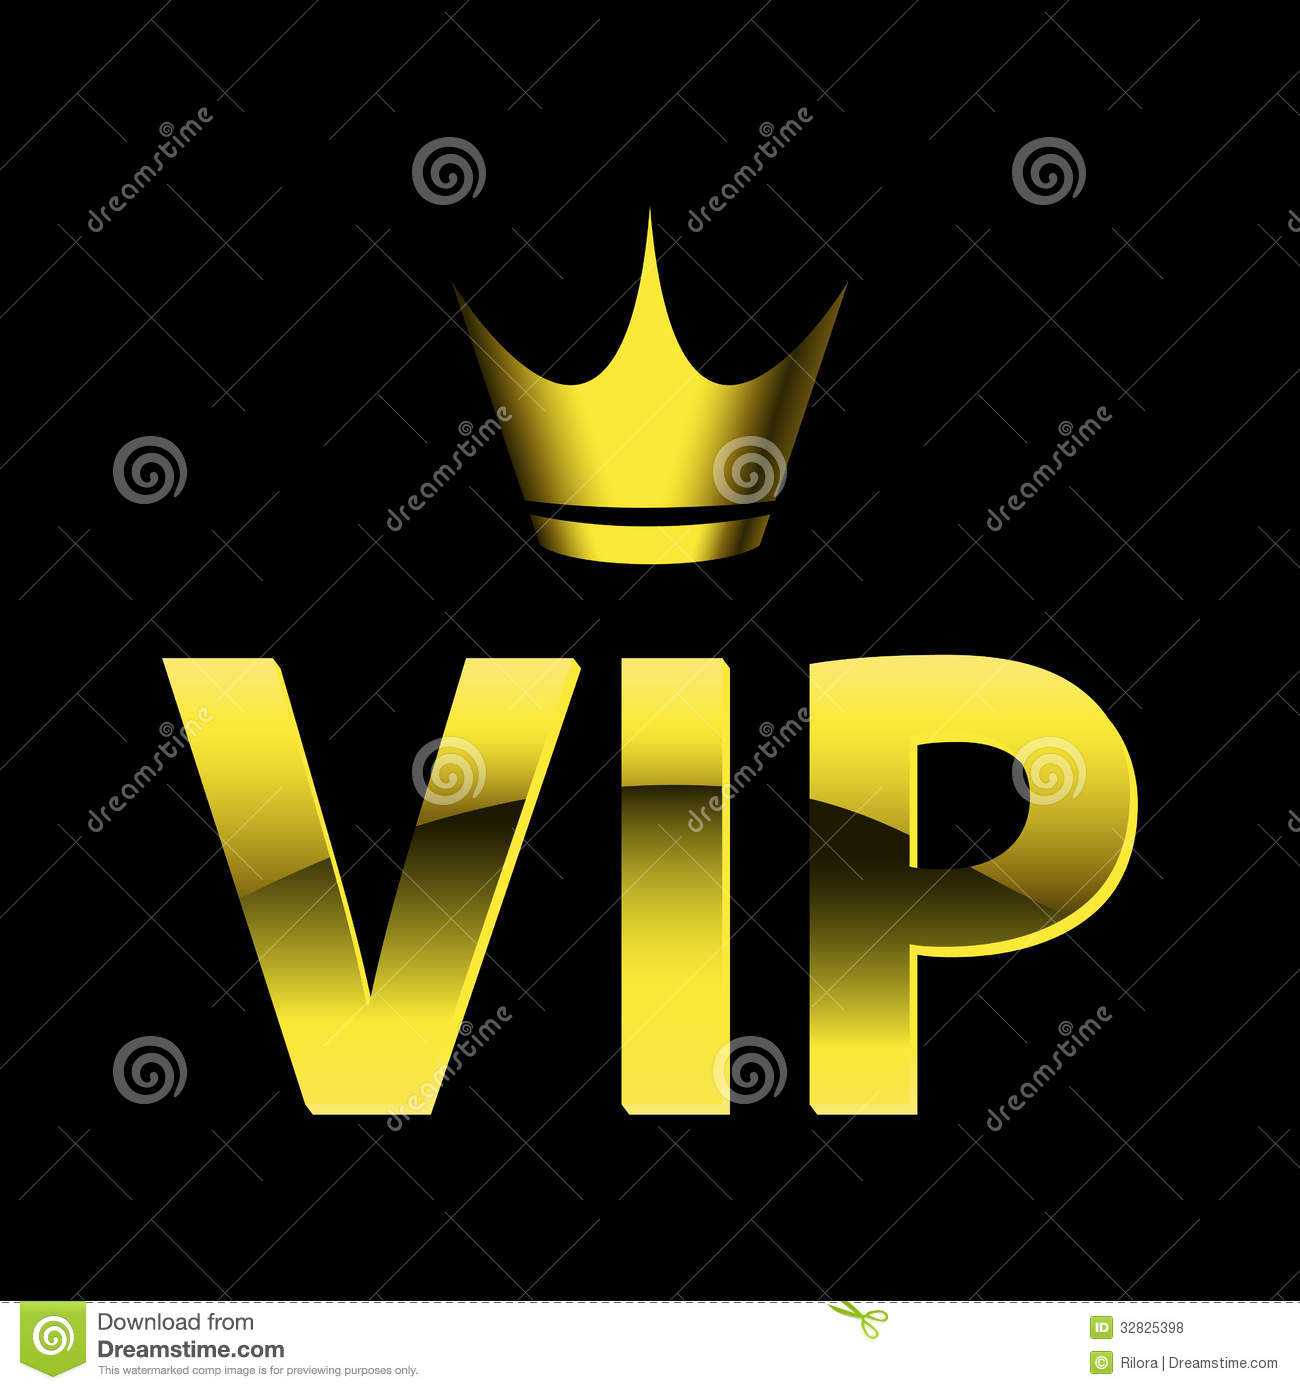 Vip Design Royalty Free Stock Photos